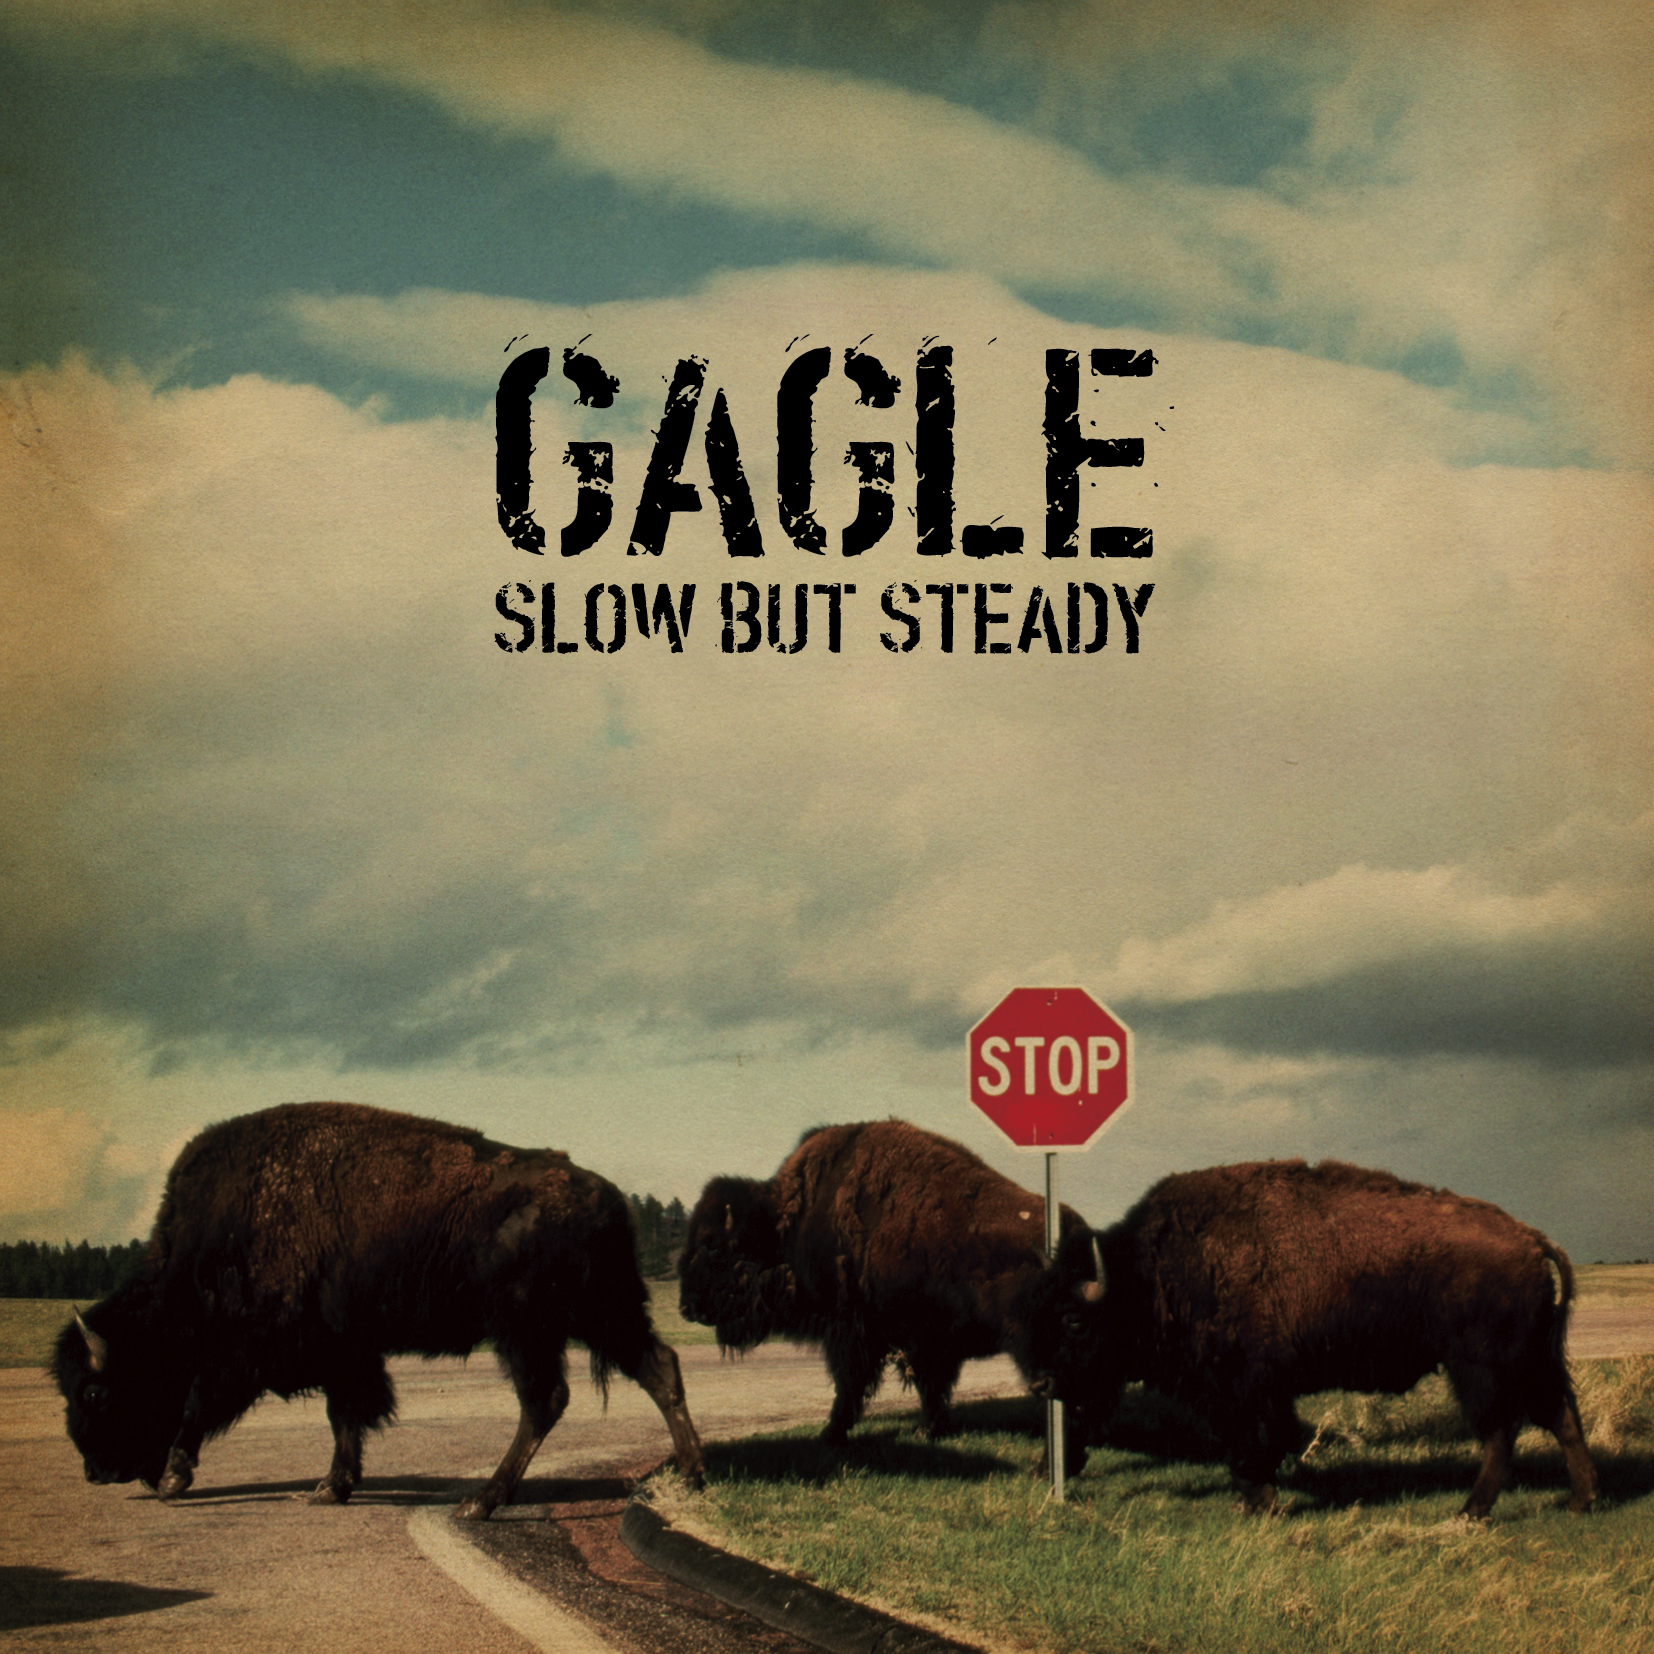 GAGLE 「SLOW BUT STEADY」 10th Anniversary Vinyl